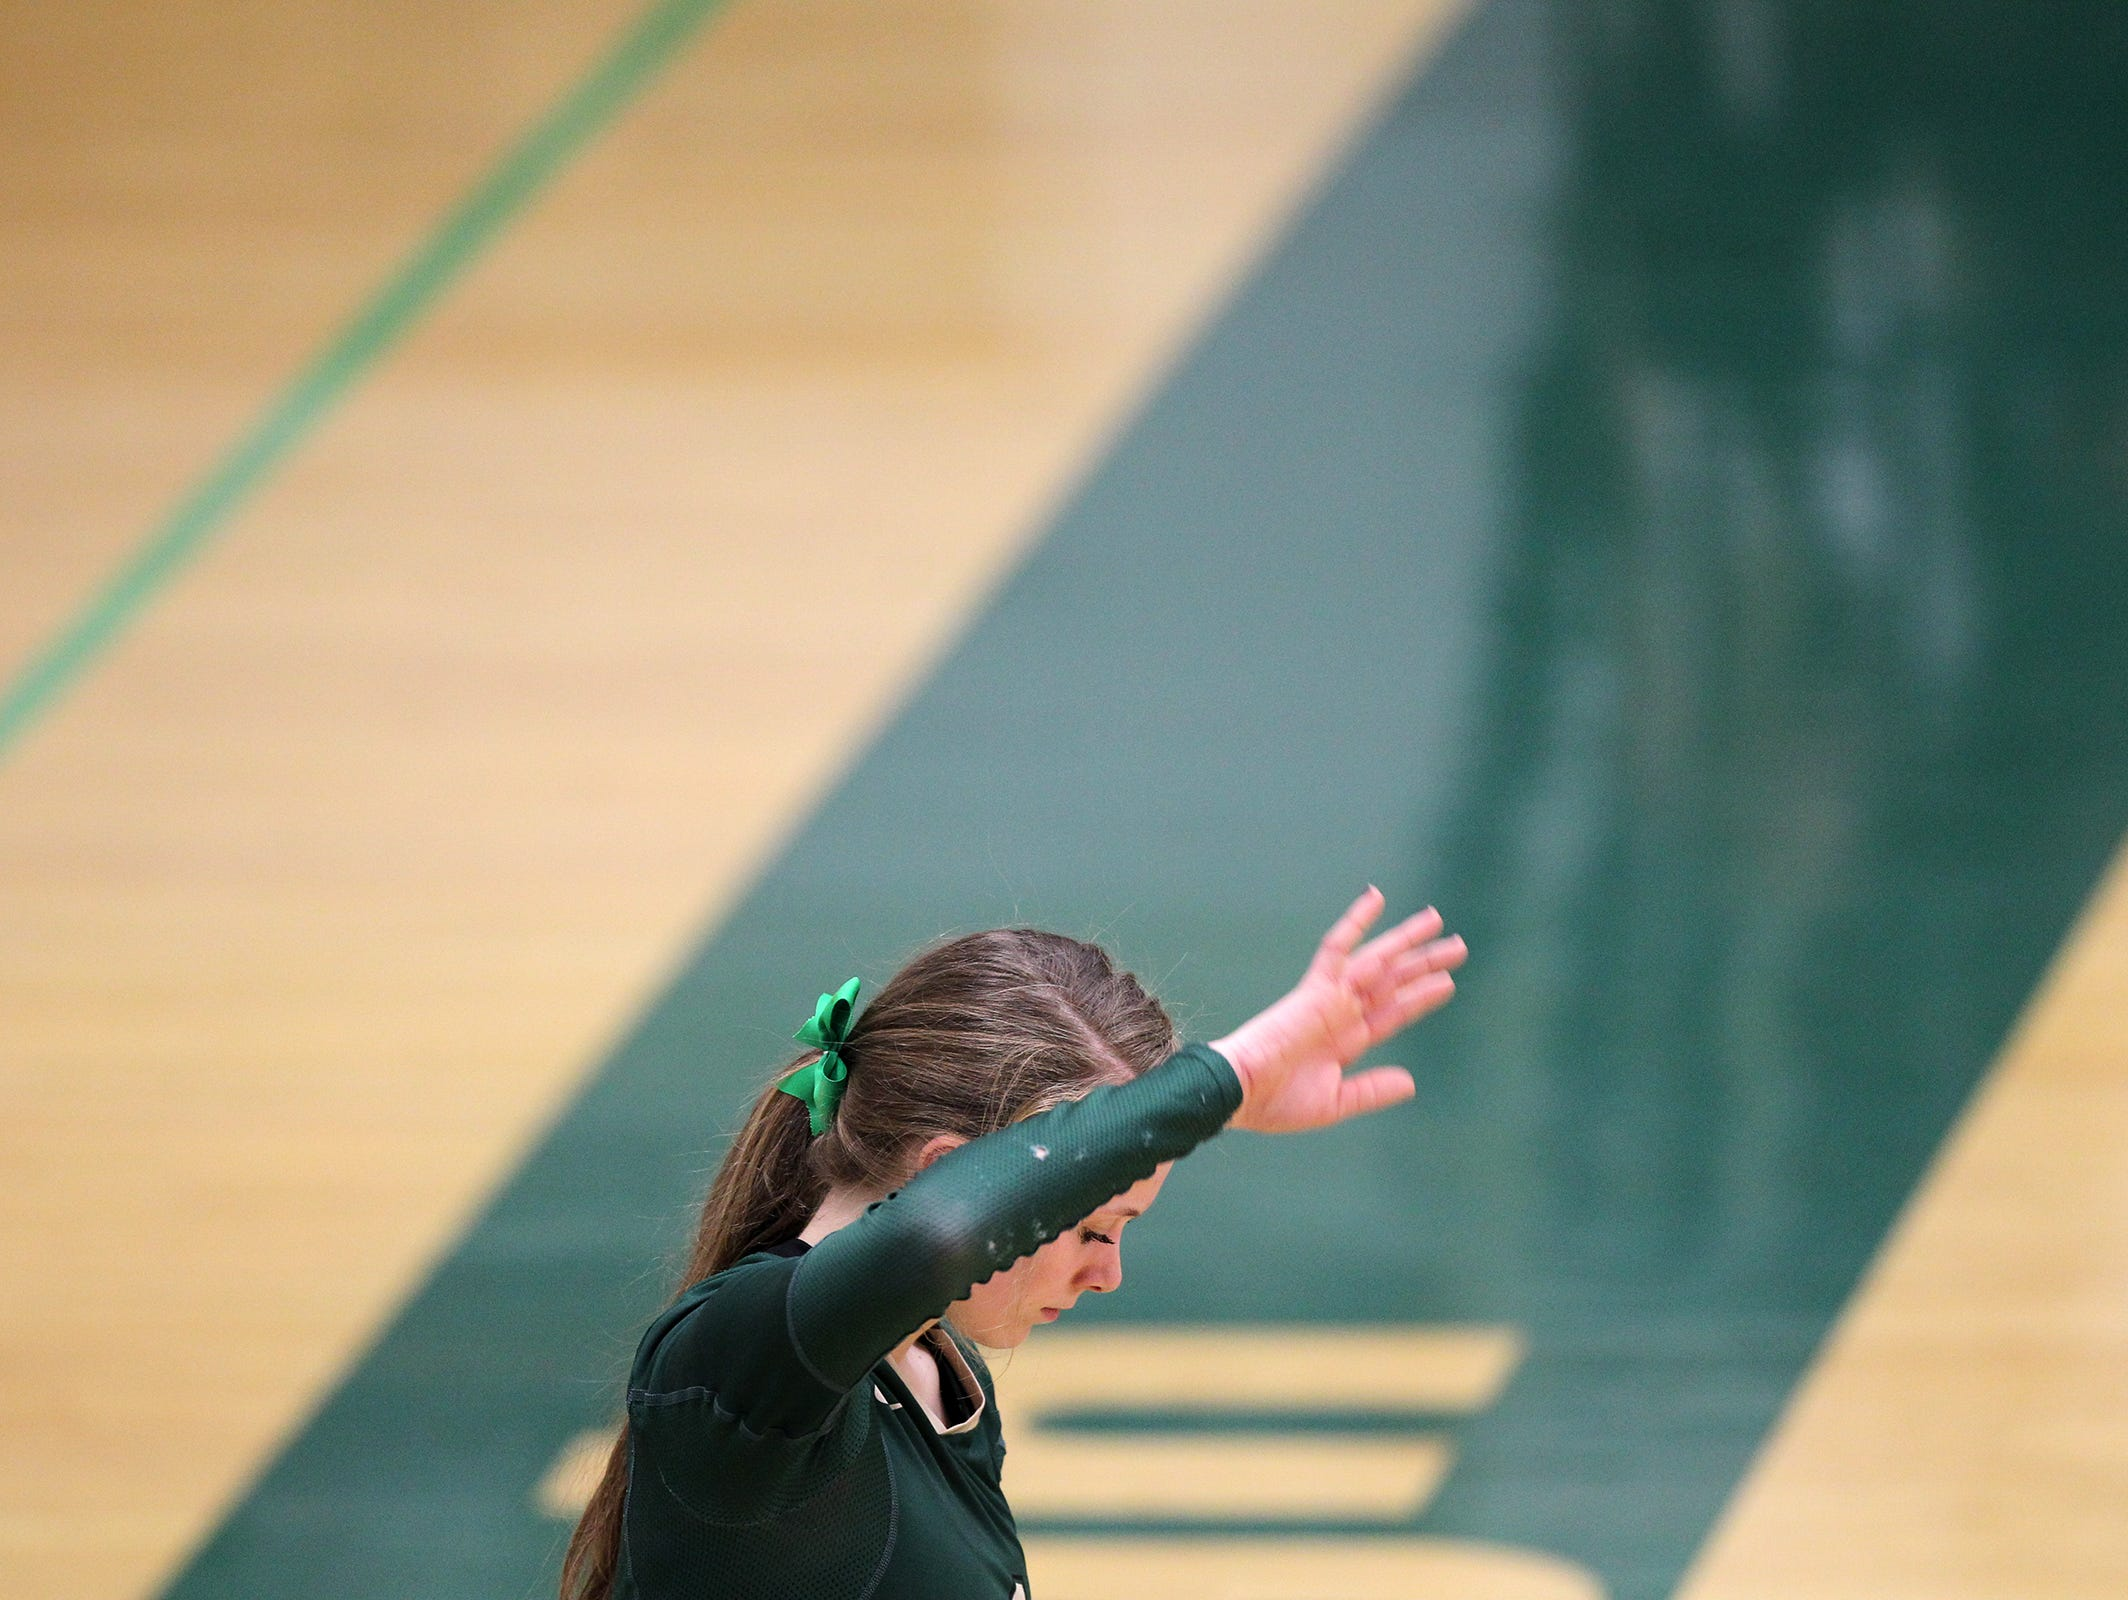 West High's Madi Ford prepares to serve during the Women of Troy's regional semifinal game against City High at West High on Thursday, Oct. 29, 2015.